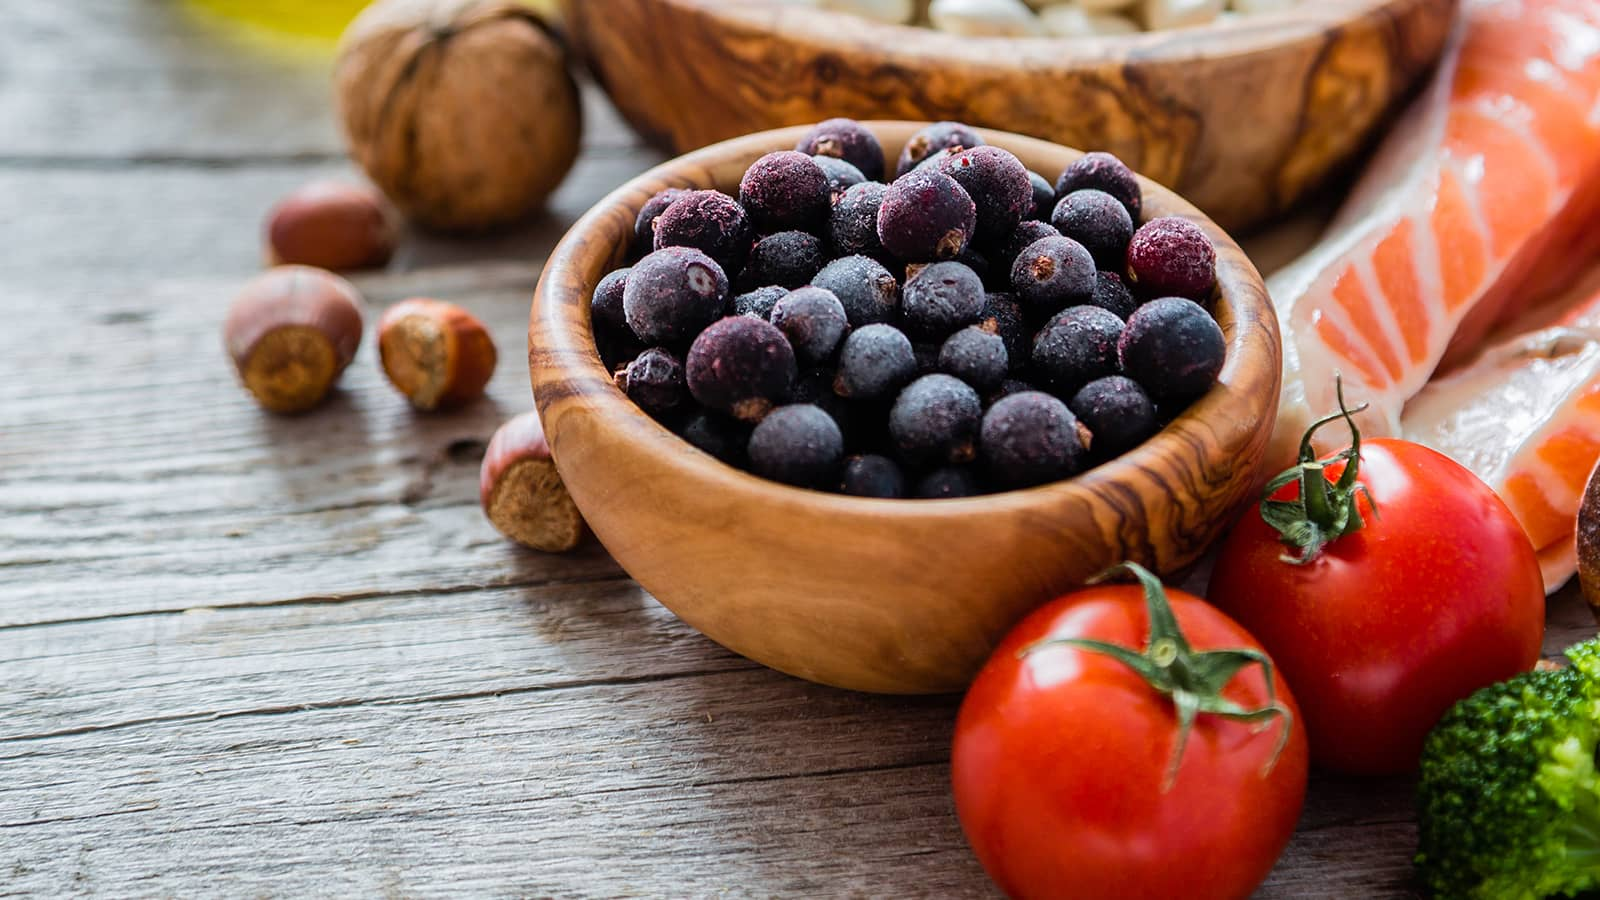 Wooden bowl of blueberries with arrangement of other healthy food - tomatoes